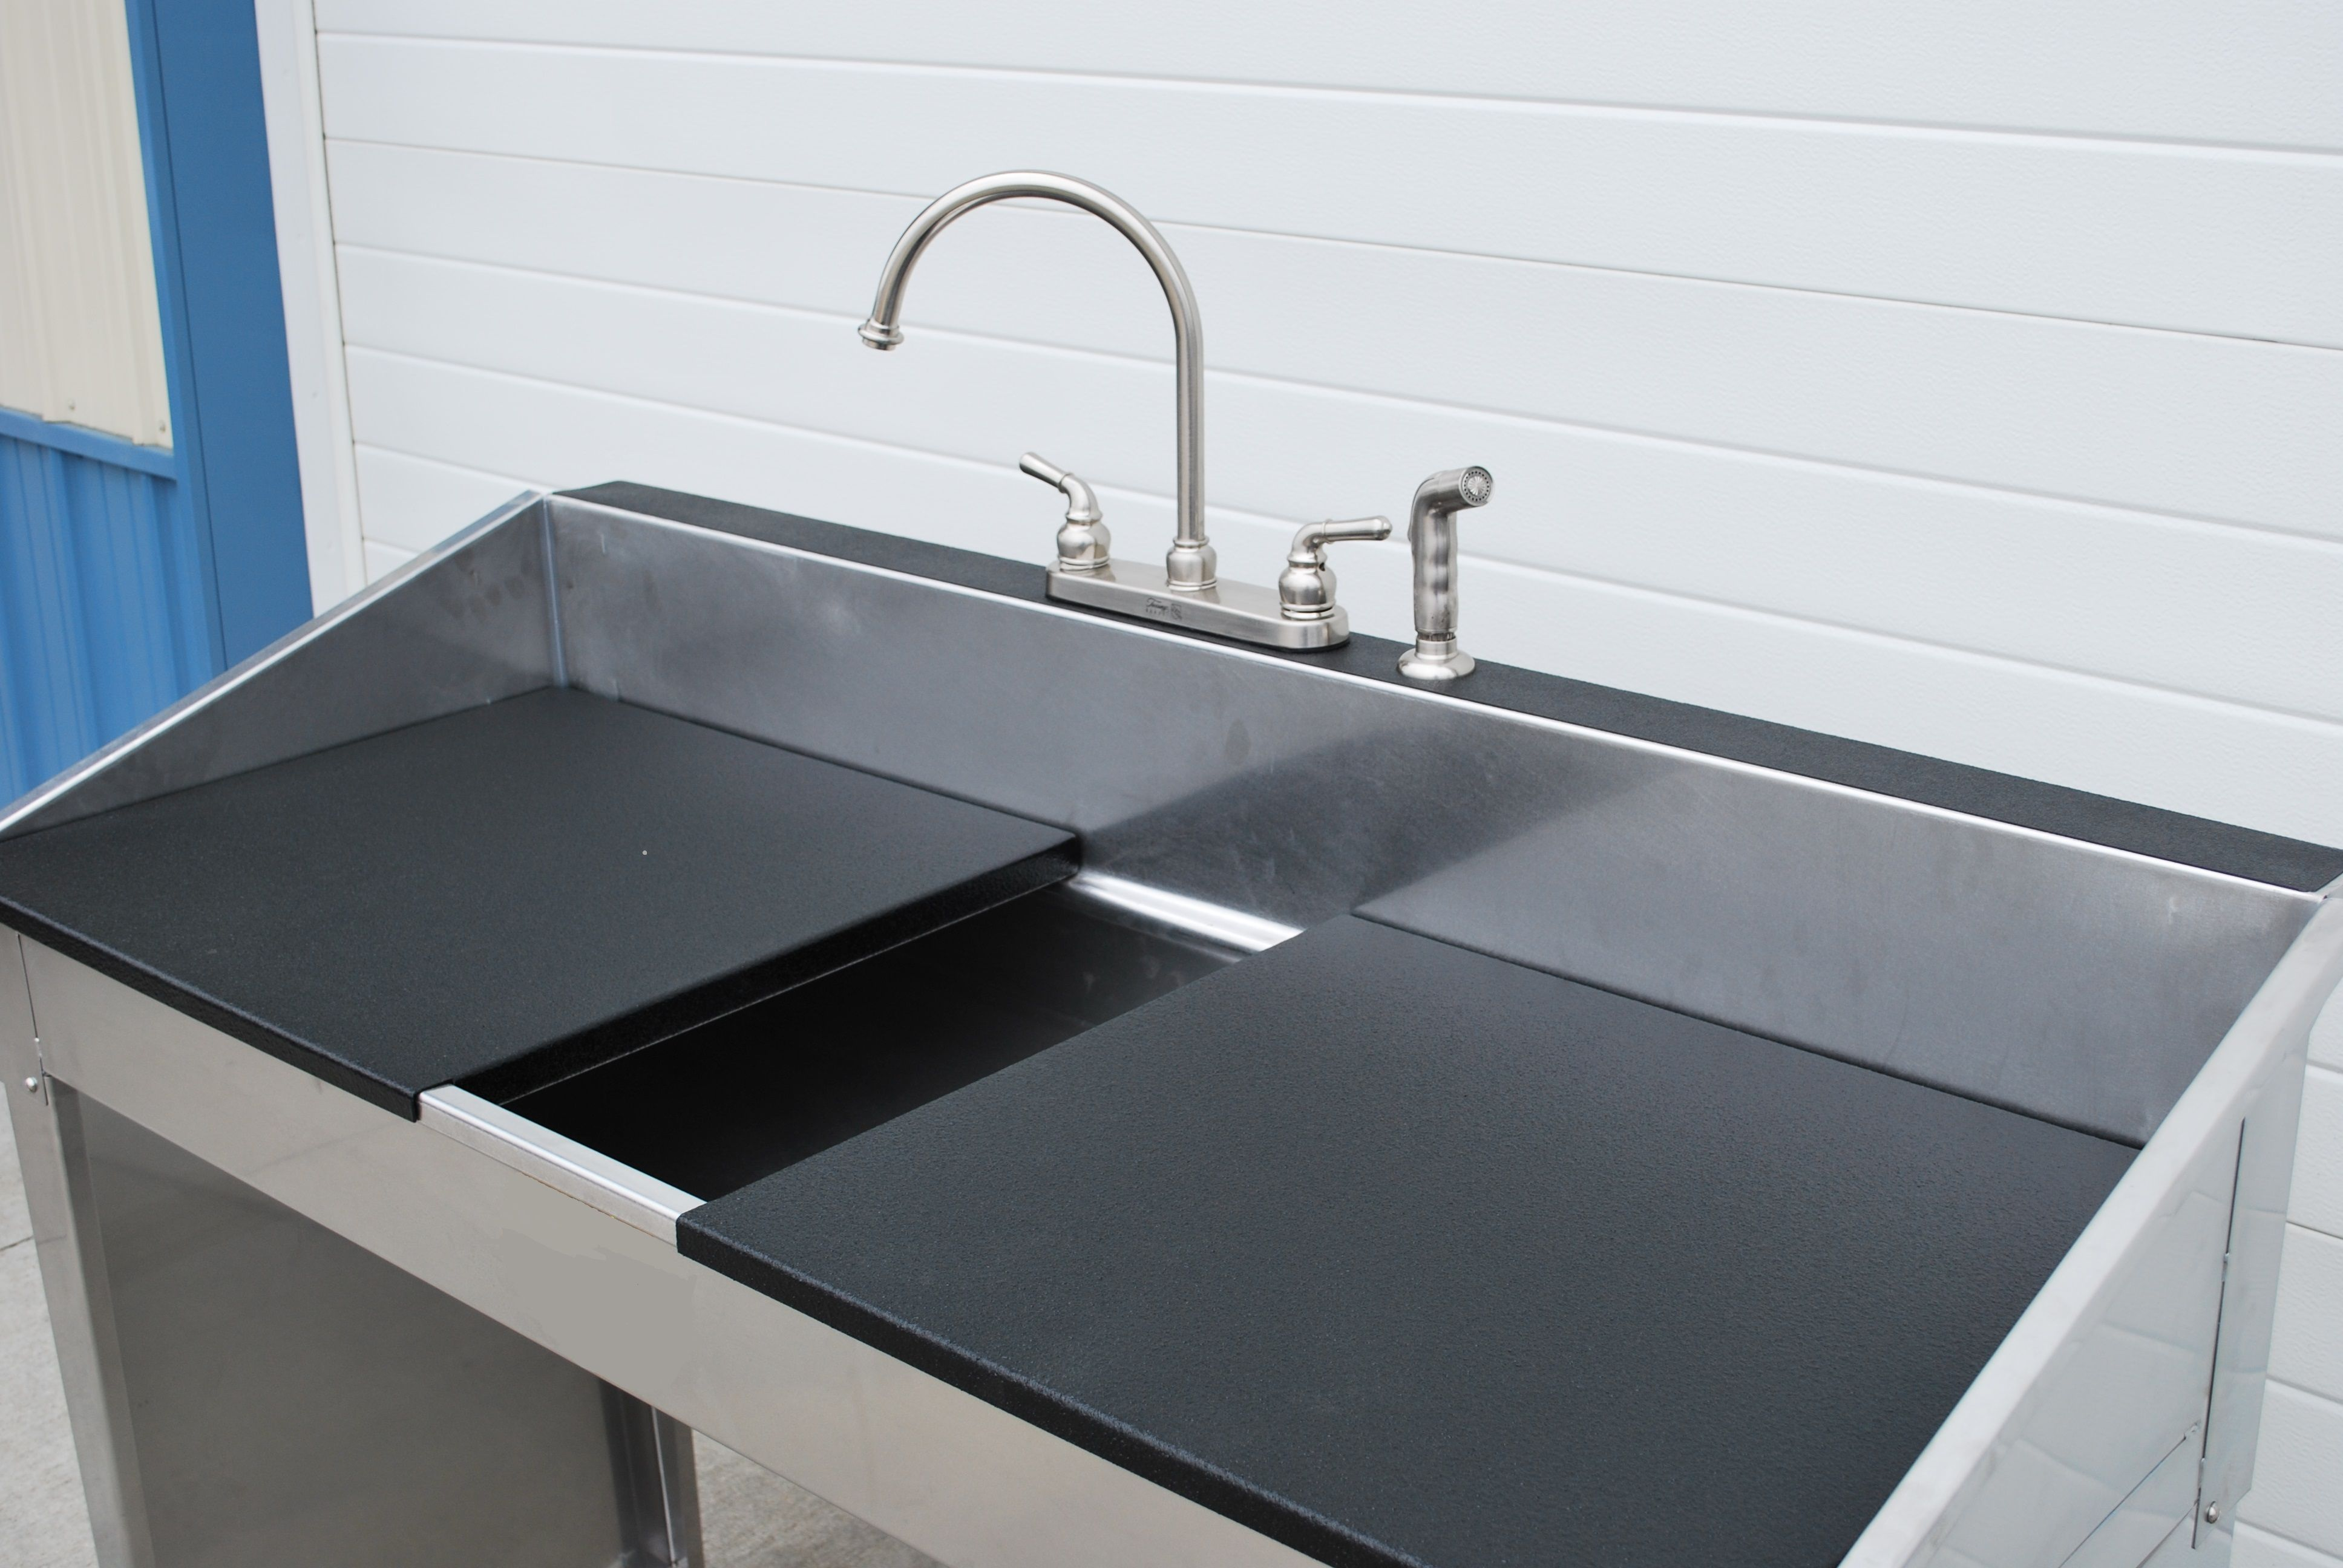 Custom Best Utility Sink Made With Two Counter Tops Removable Counter Top Sink Utility Sink Utility Sink Sink Stainless Steel Utility Sink